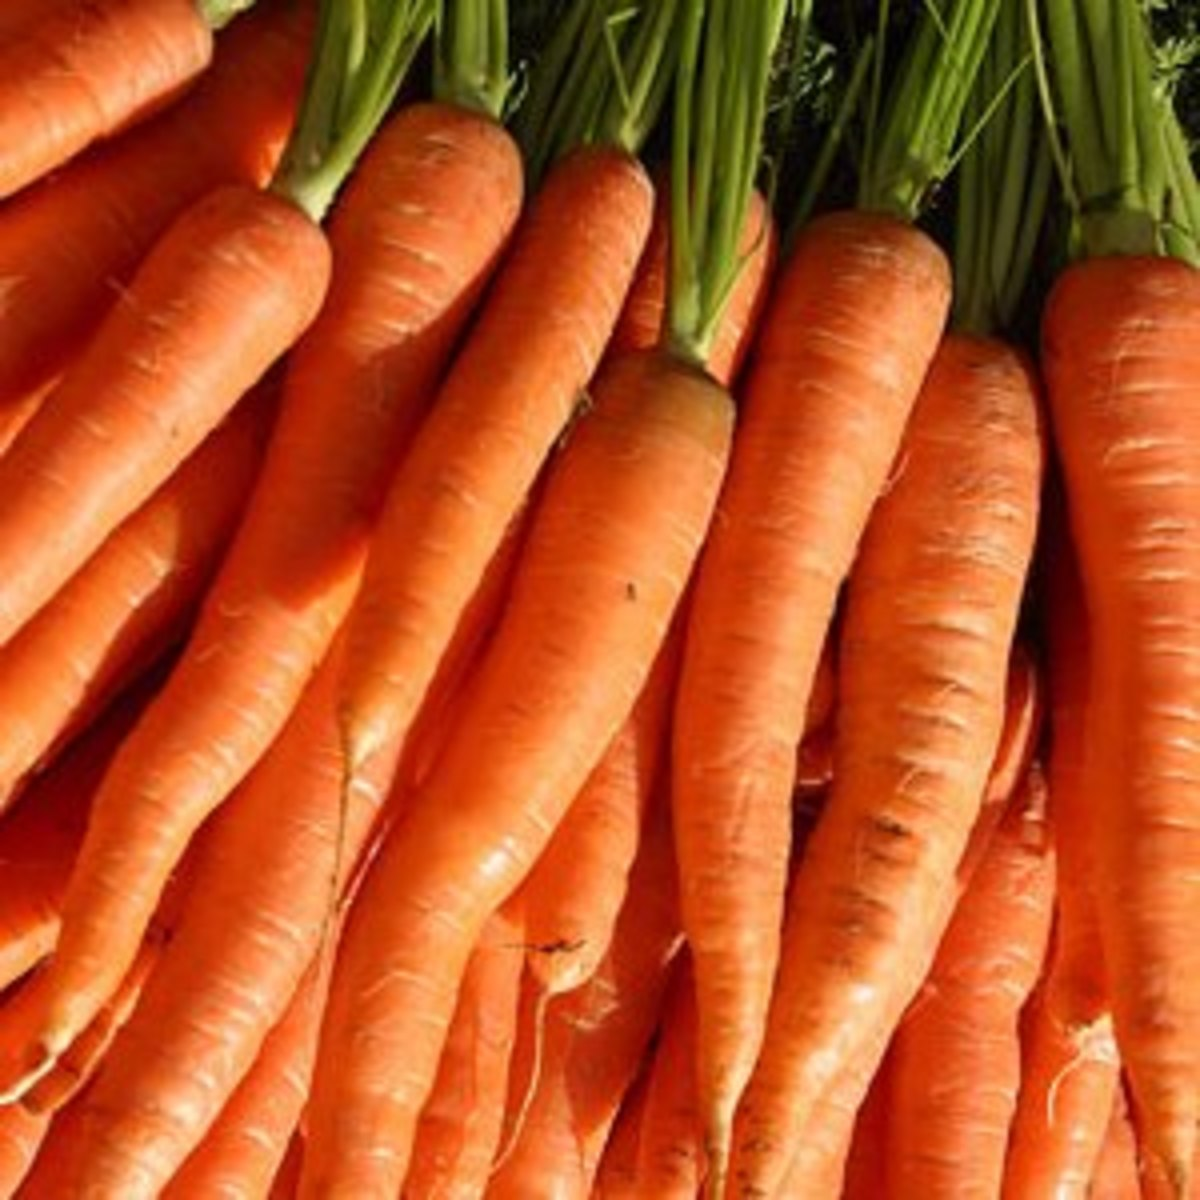 The Idiot's Guide: How to Grow Carrots Indoors & Outdoors